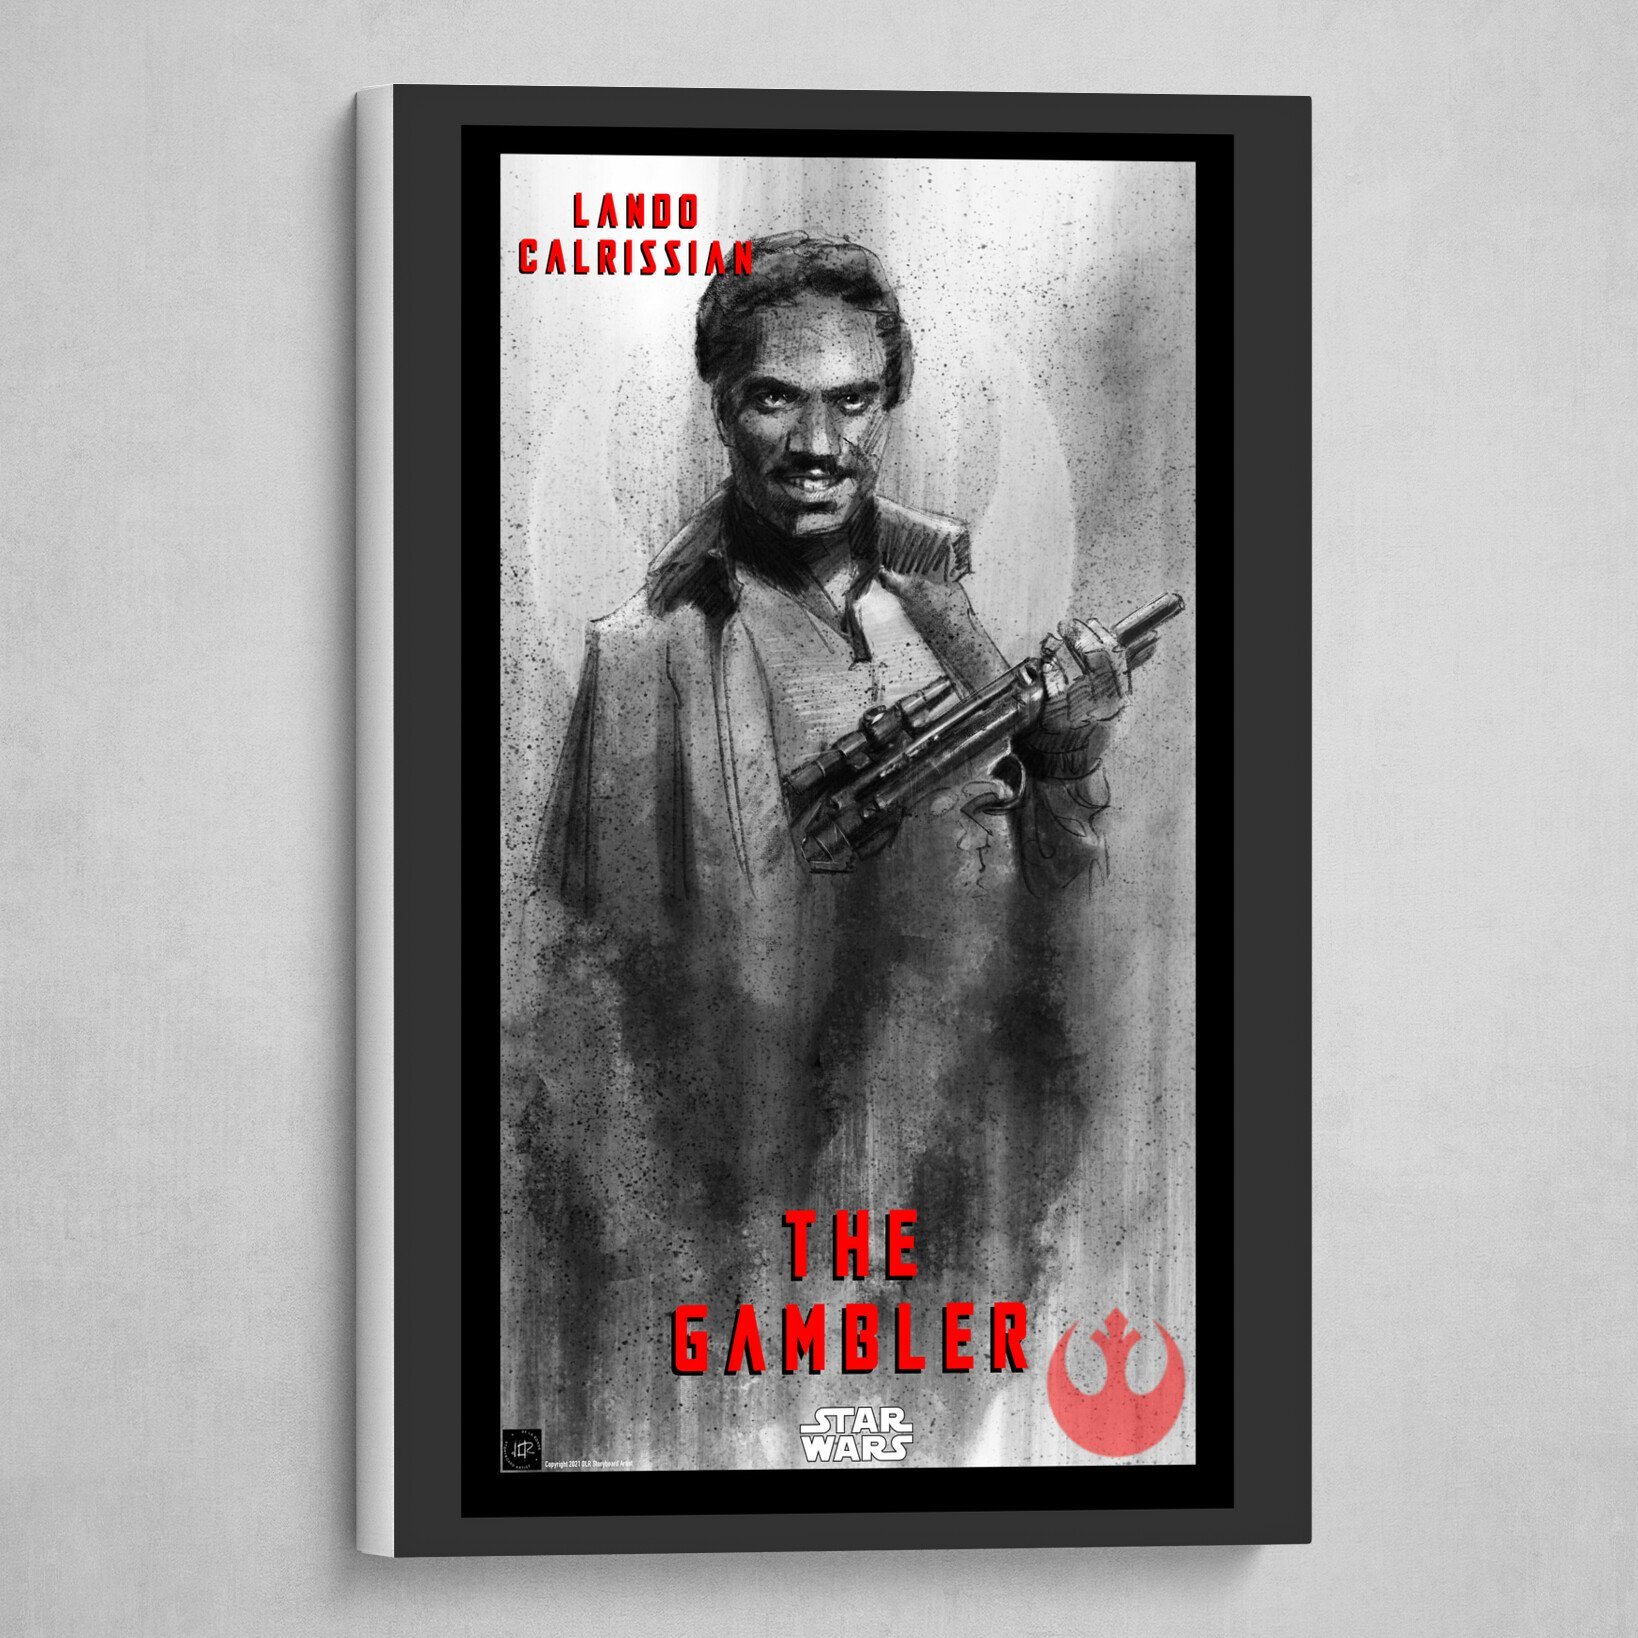 Lando Calrissian Poster -The Gambler in B&W with Red